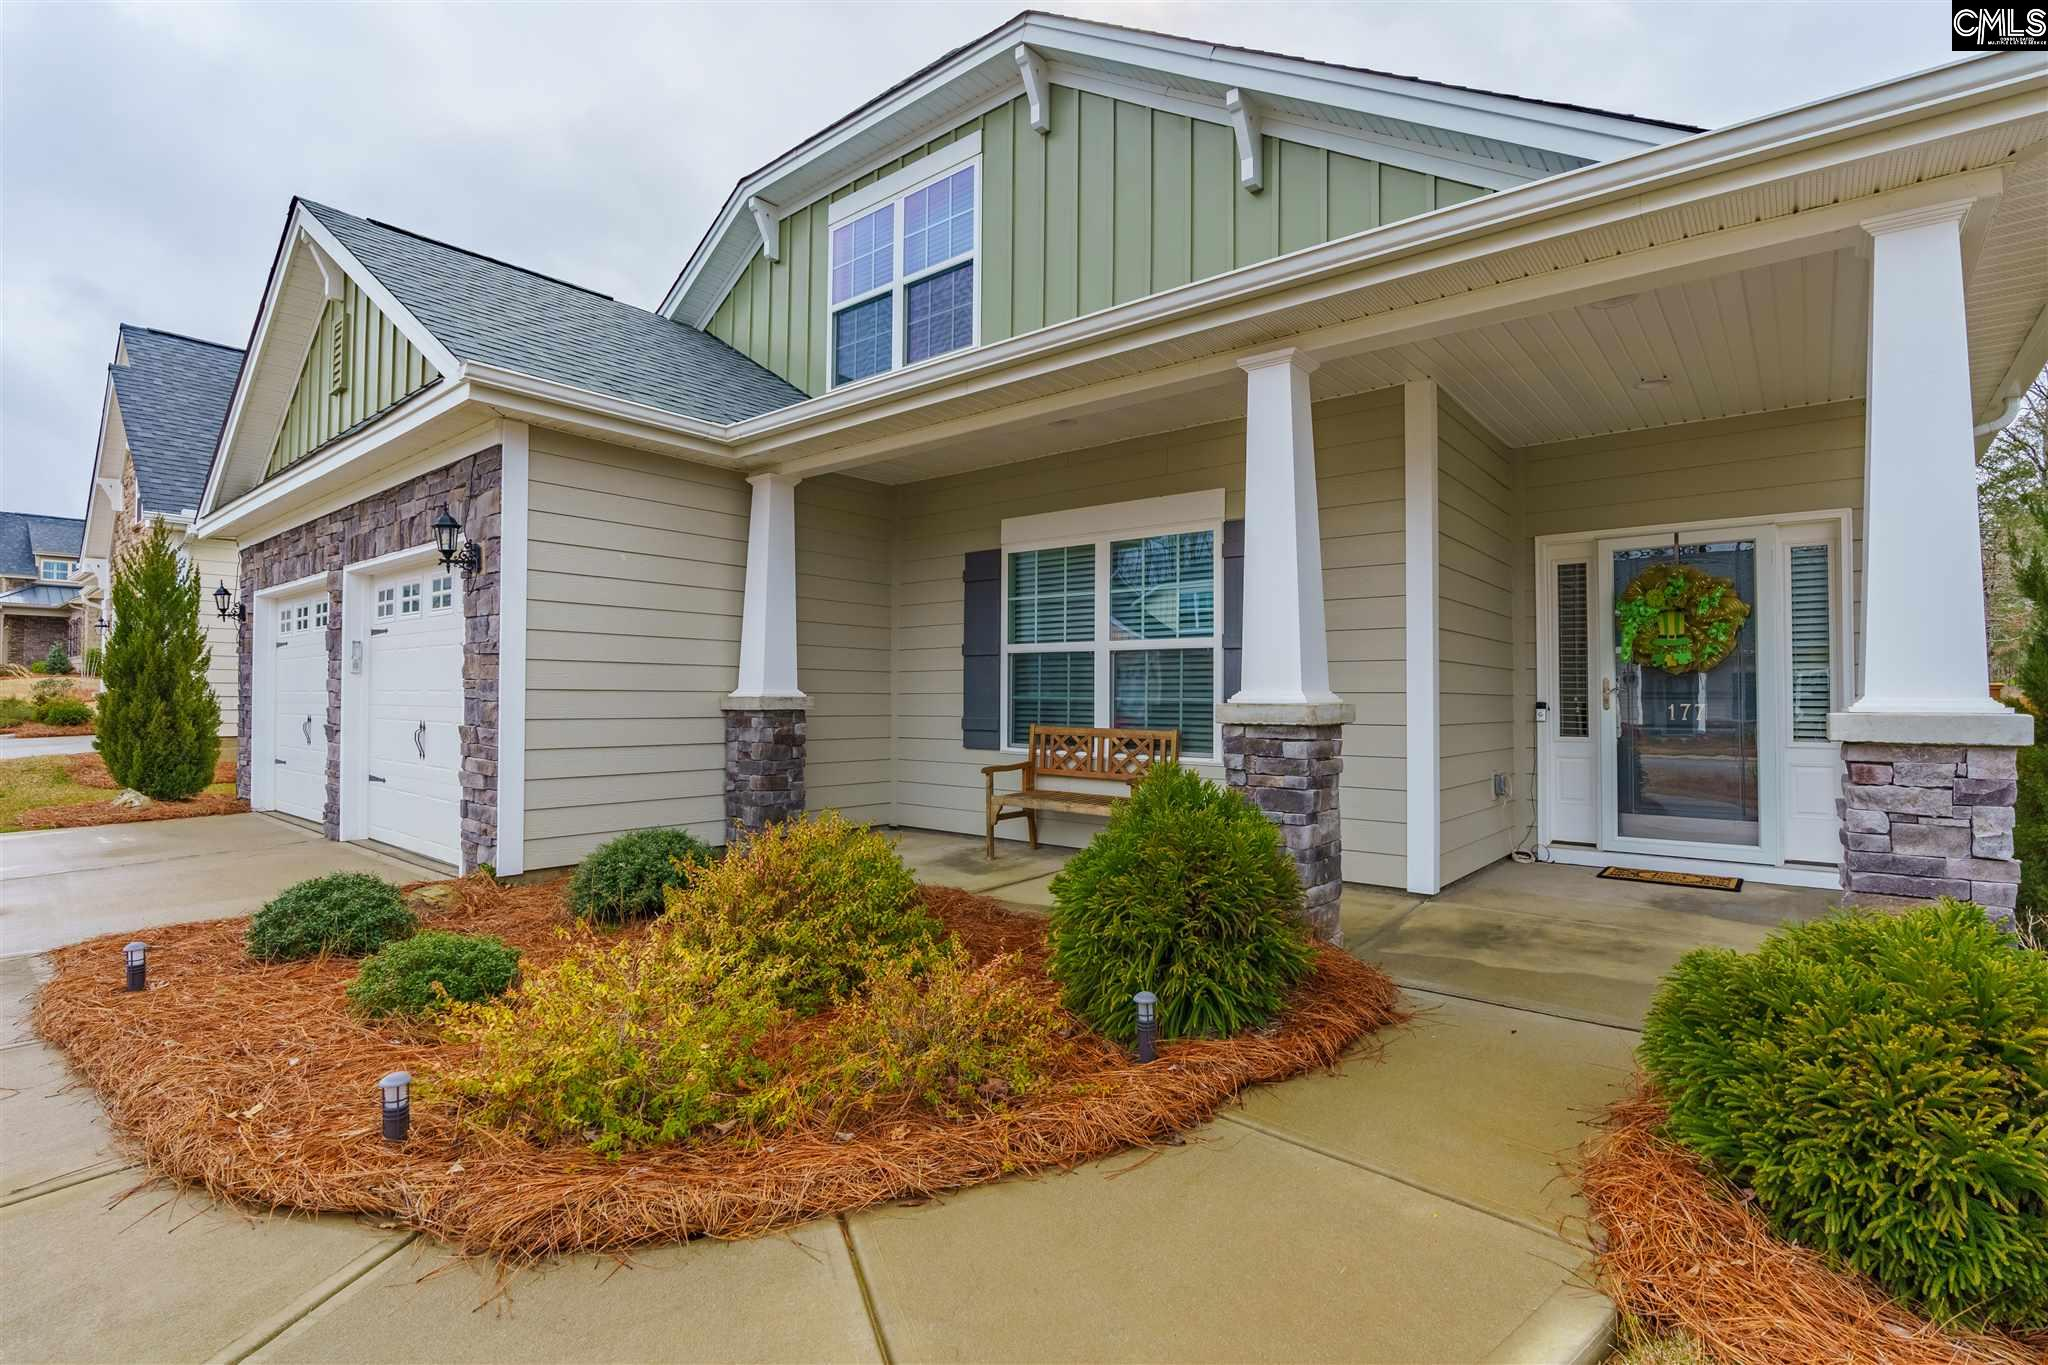 177 Lockleigh Chapin, SC 29036